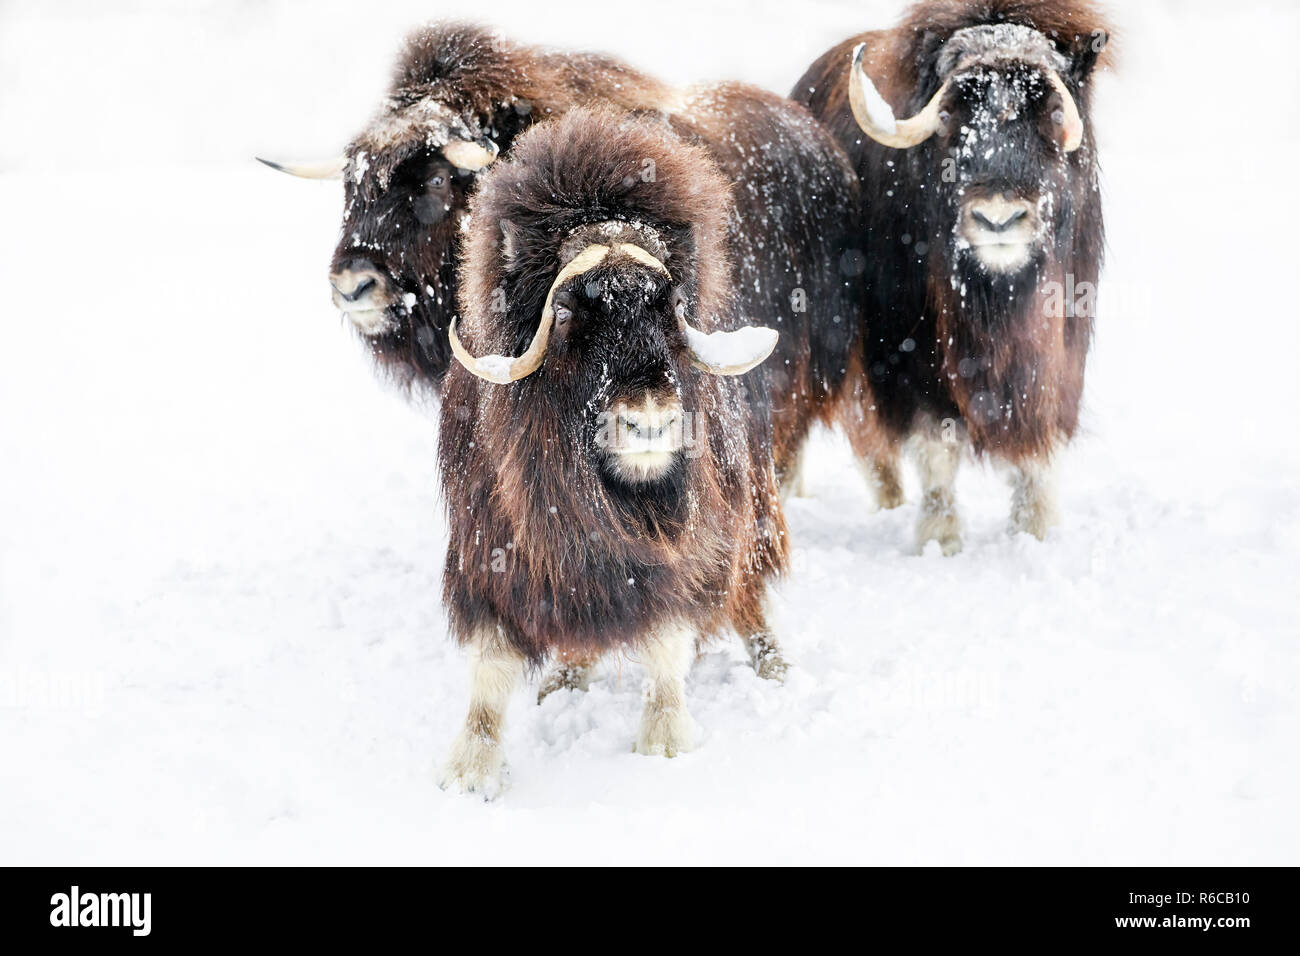 Muskox, Ovibos moschatus, in a winter snowstorm, Manitoba, Canada. - Stock Image